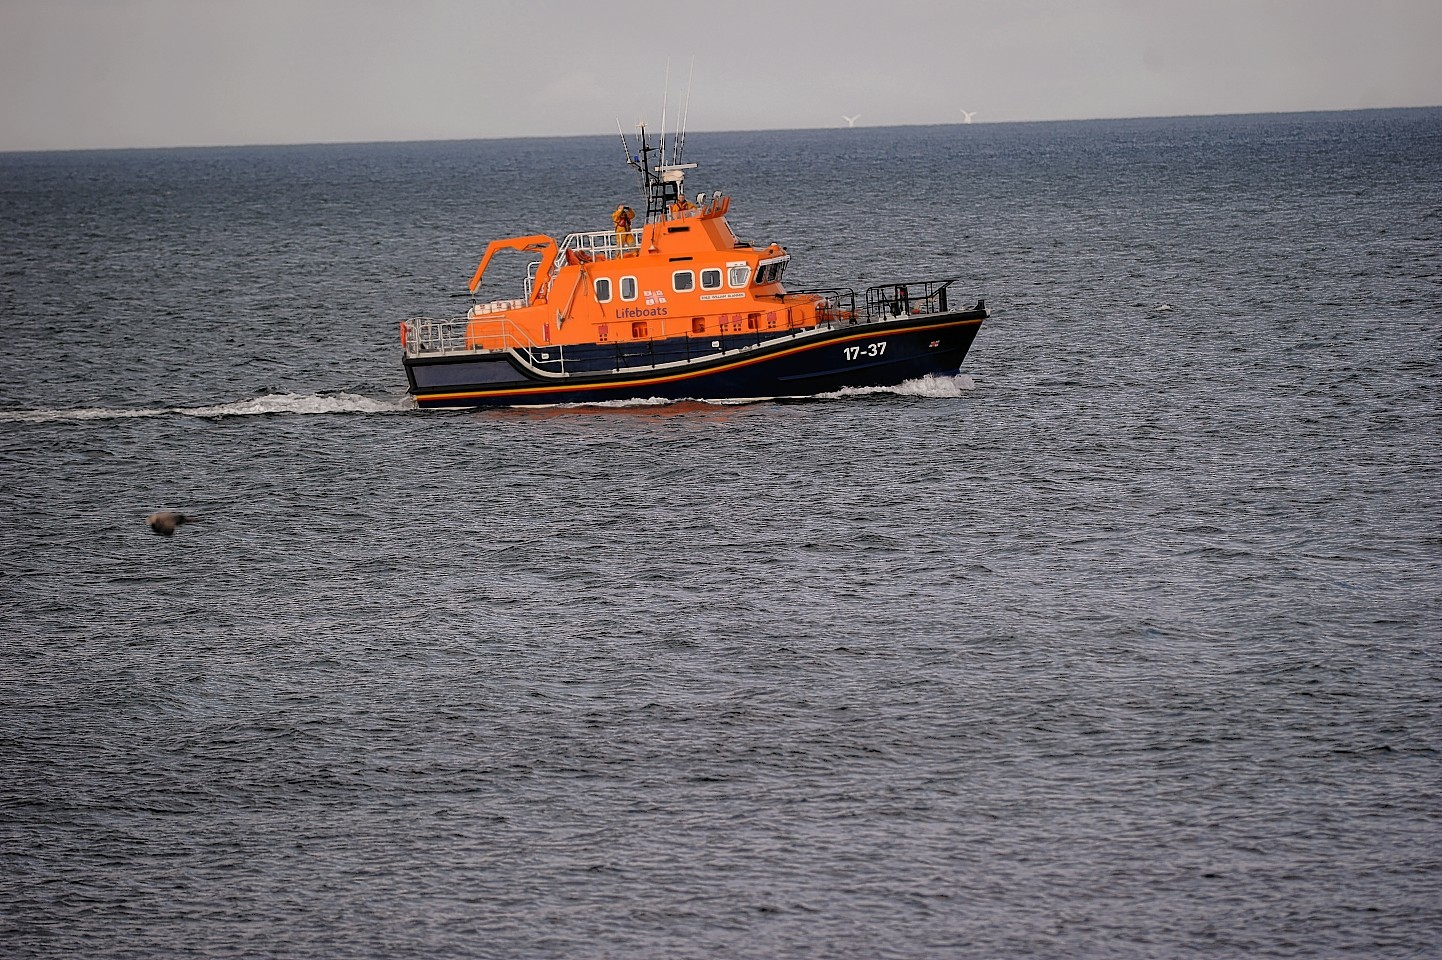 The Buckie Lifeboat was called out